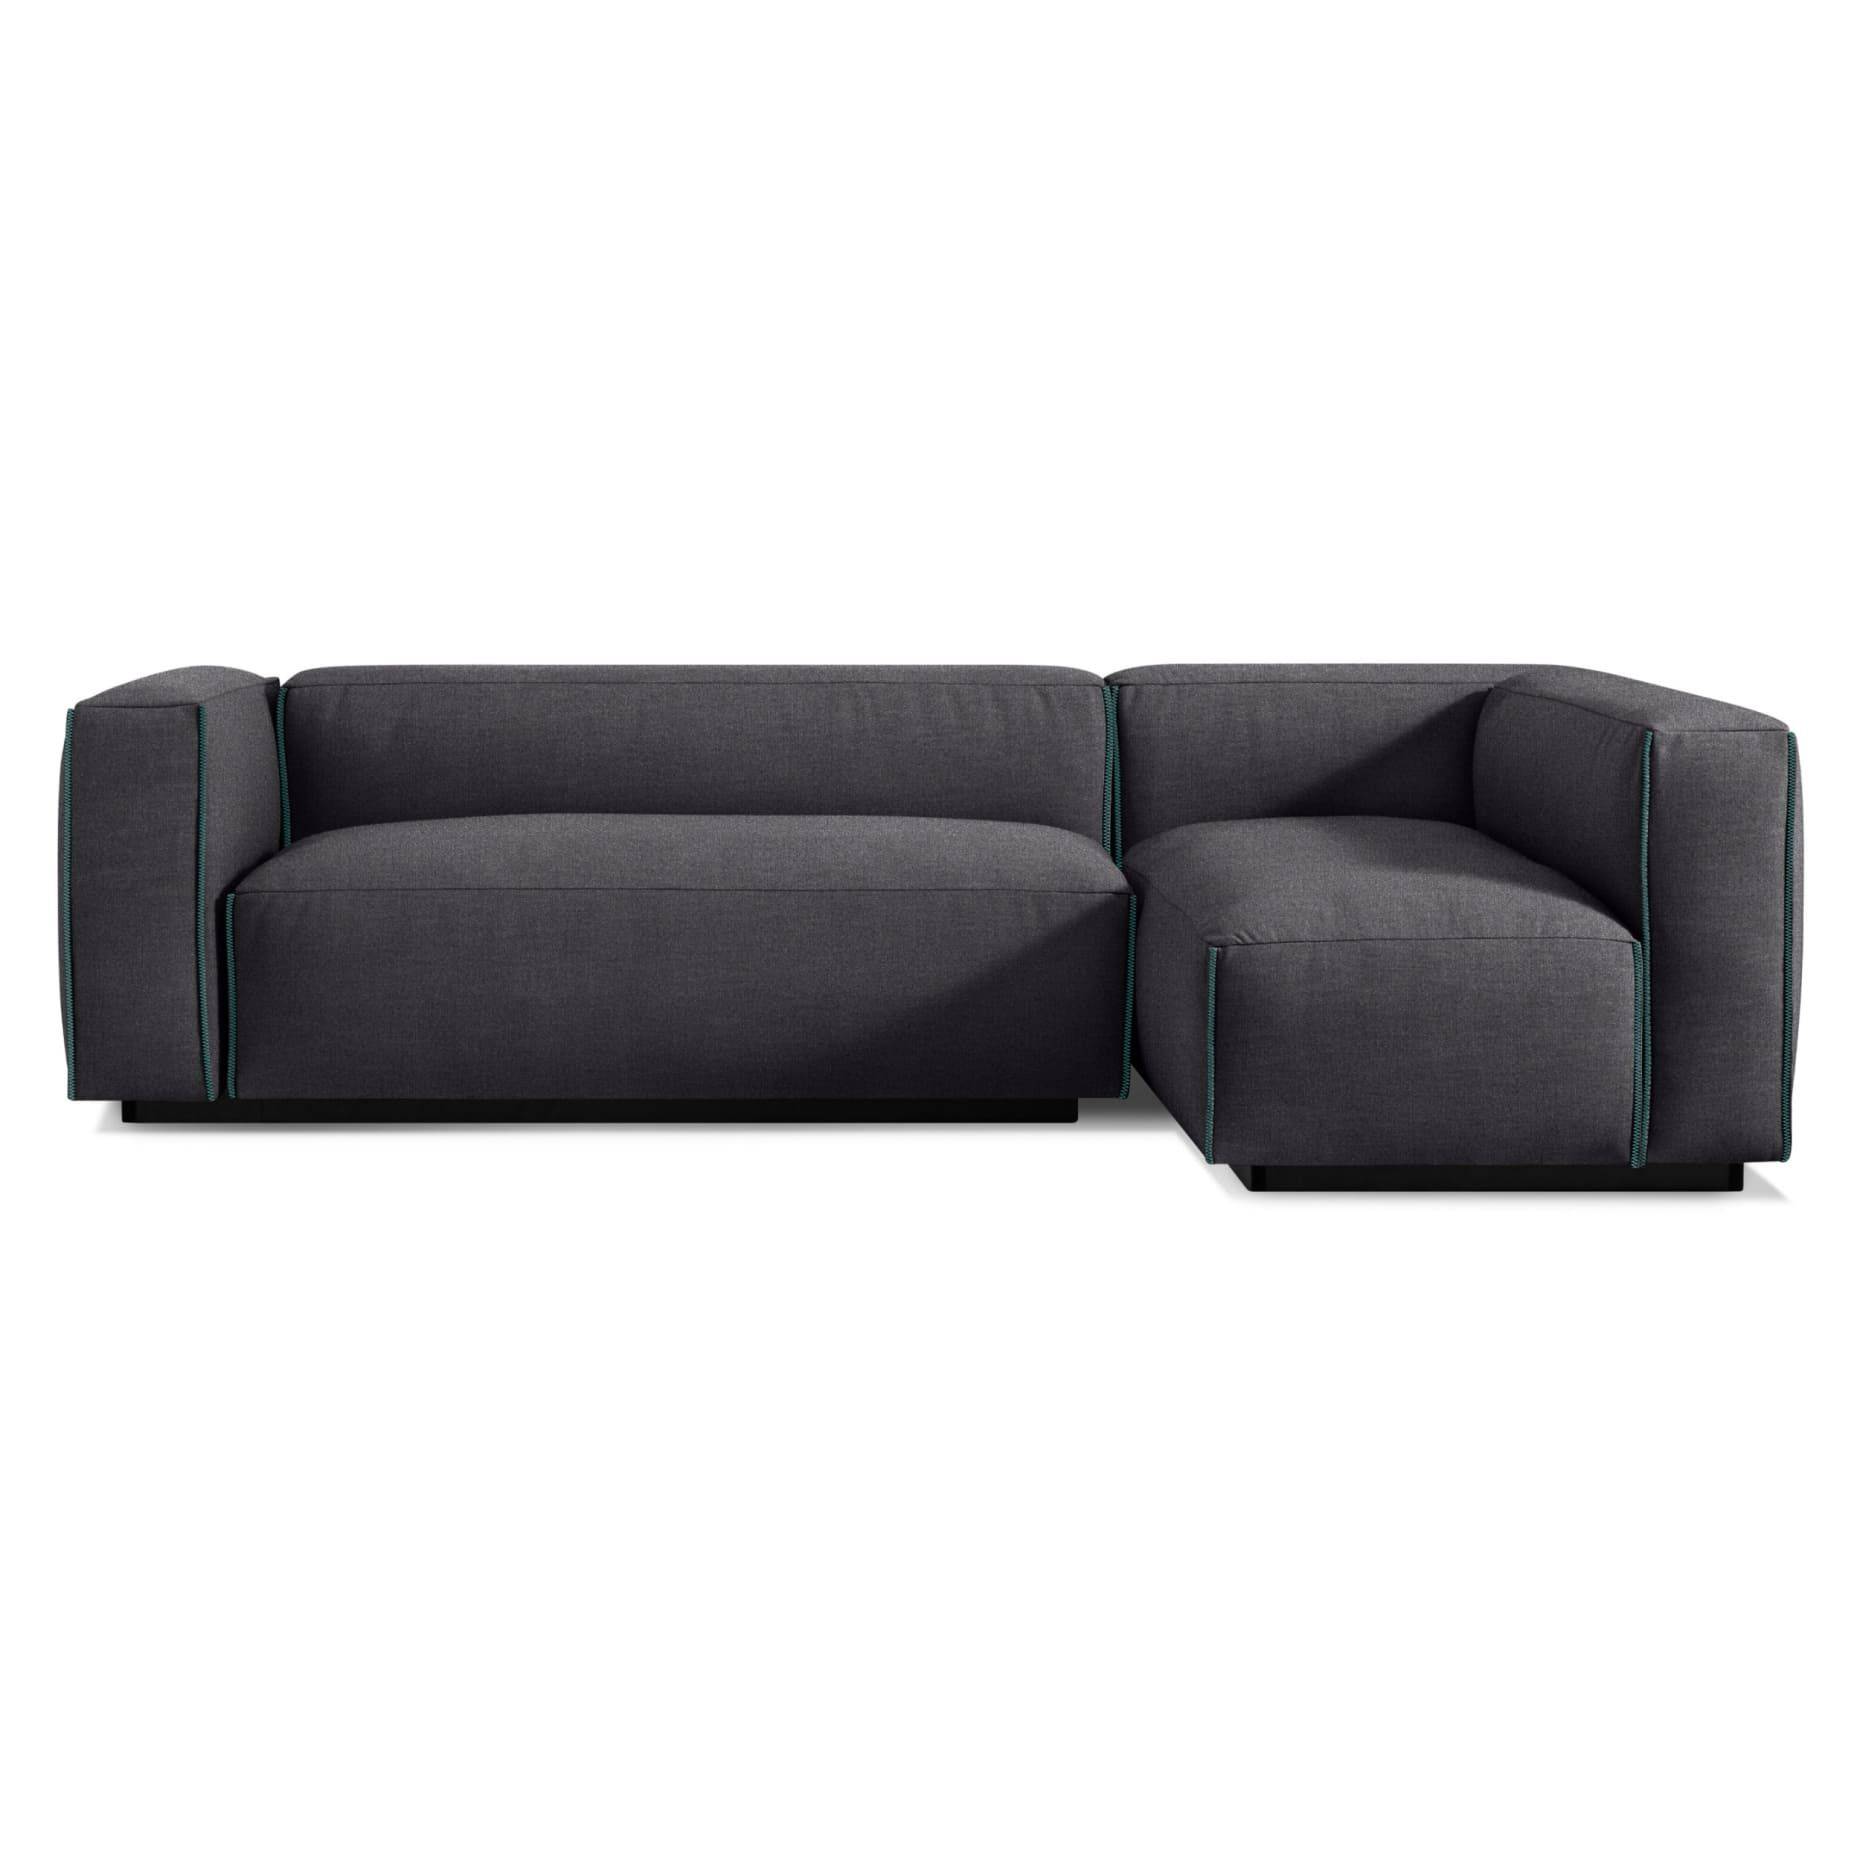 Cleon Small Sectional Sofa In 2020 Small Sectional Sofa Sectional Sofa Modern Sofa Sectional